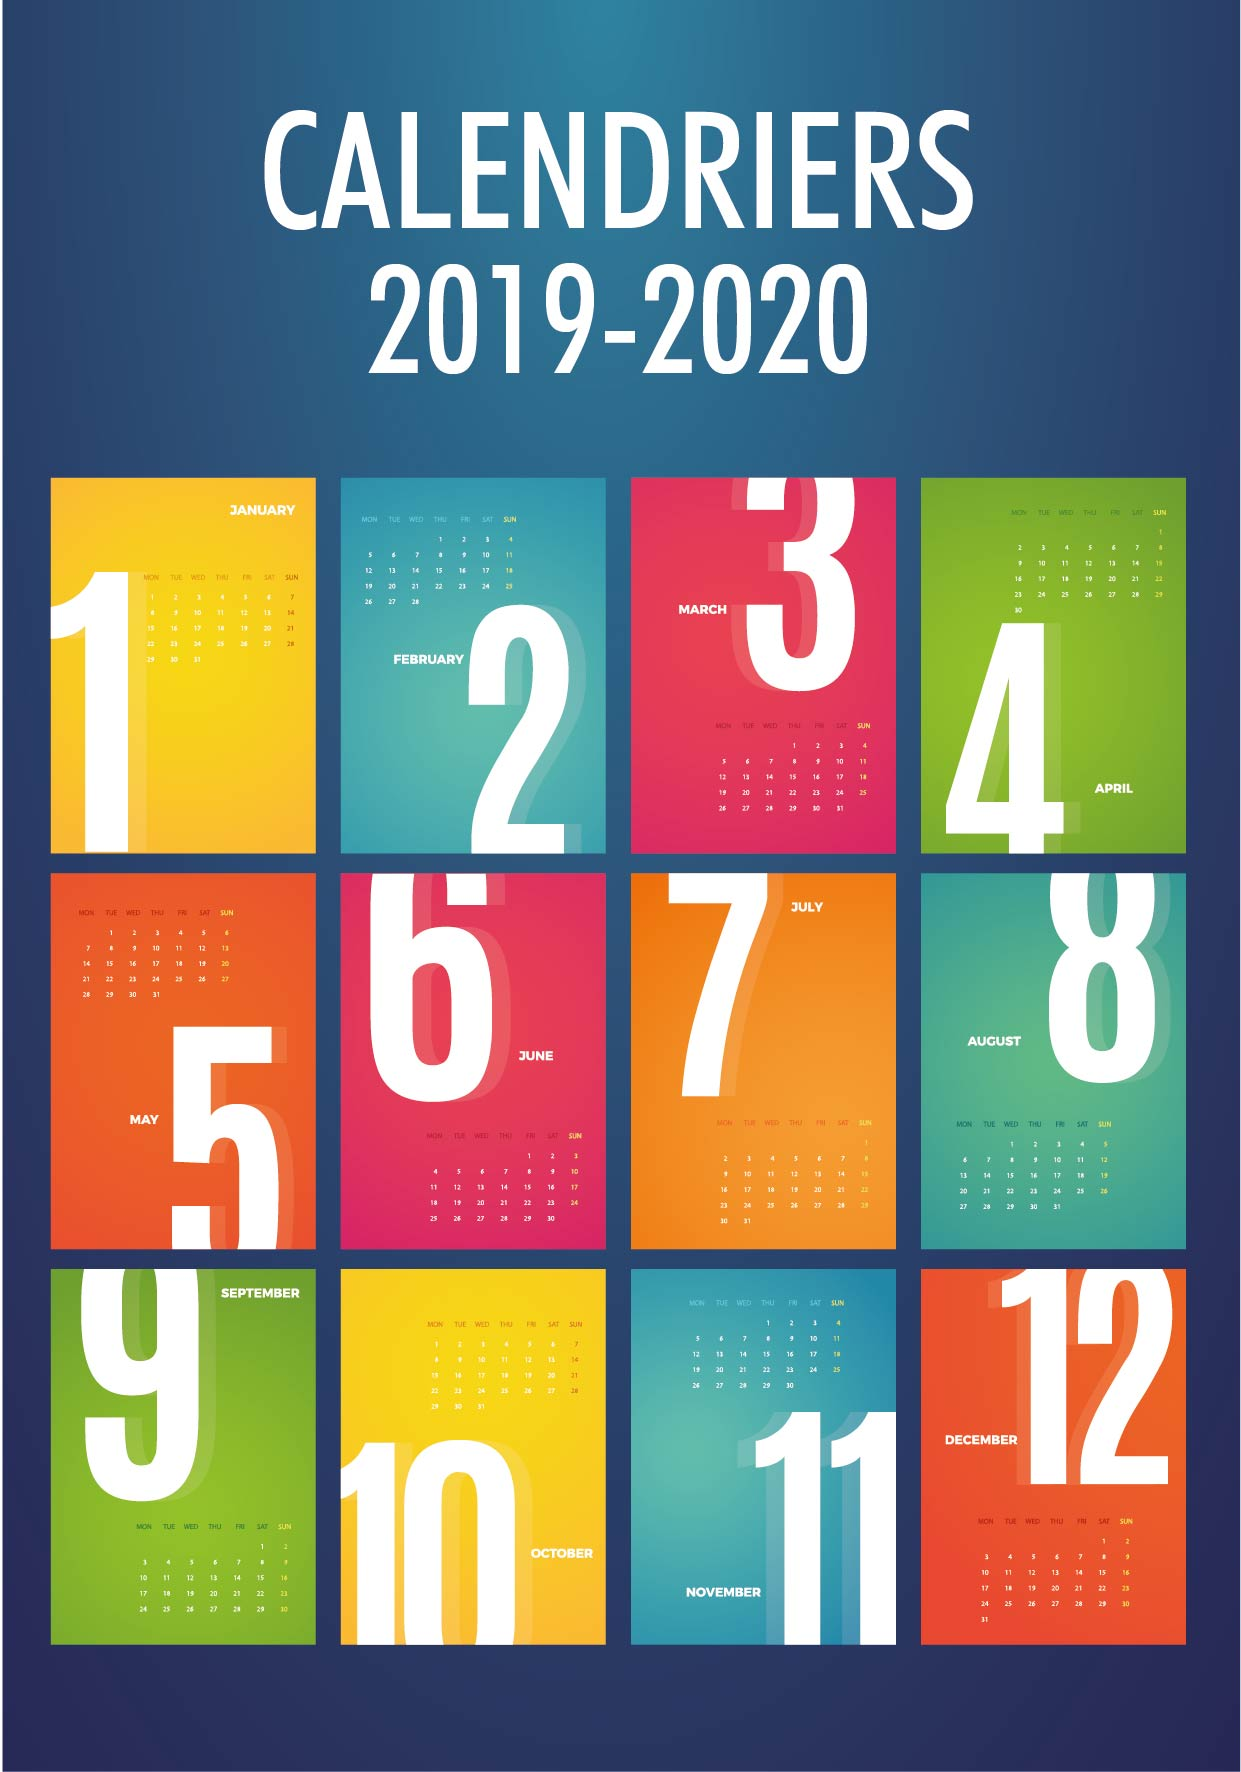 Calendriers Scolaires 2019-2020